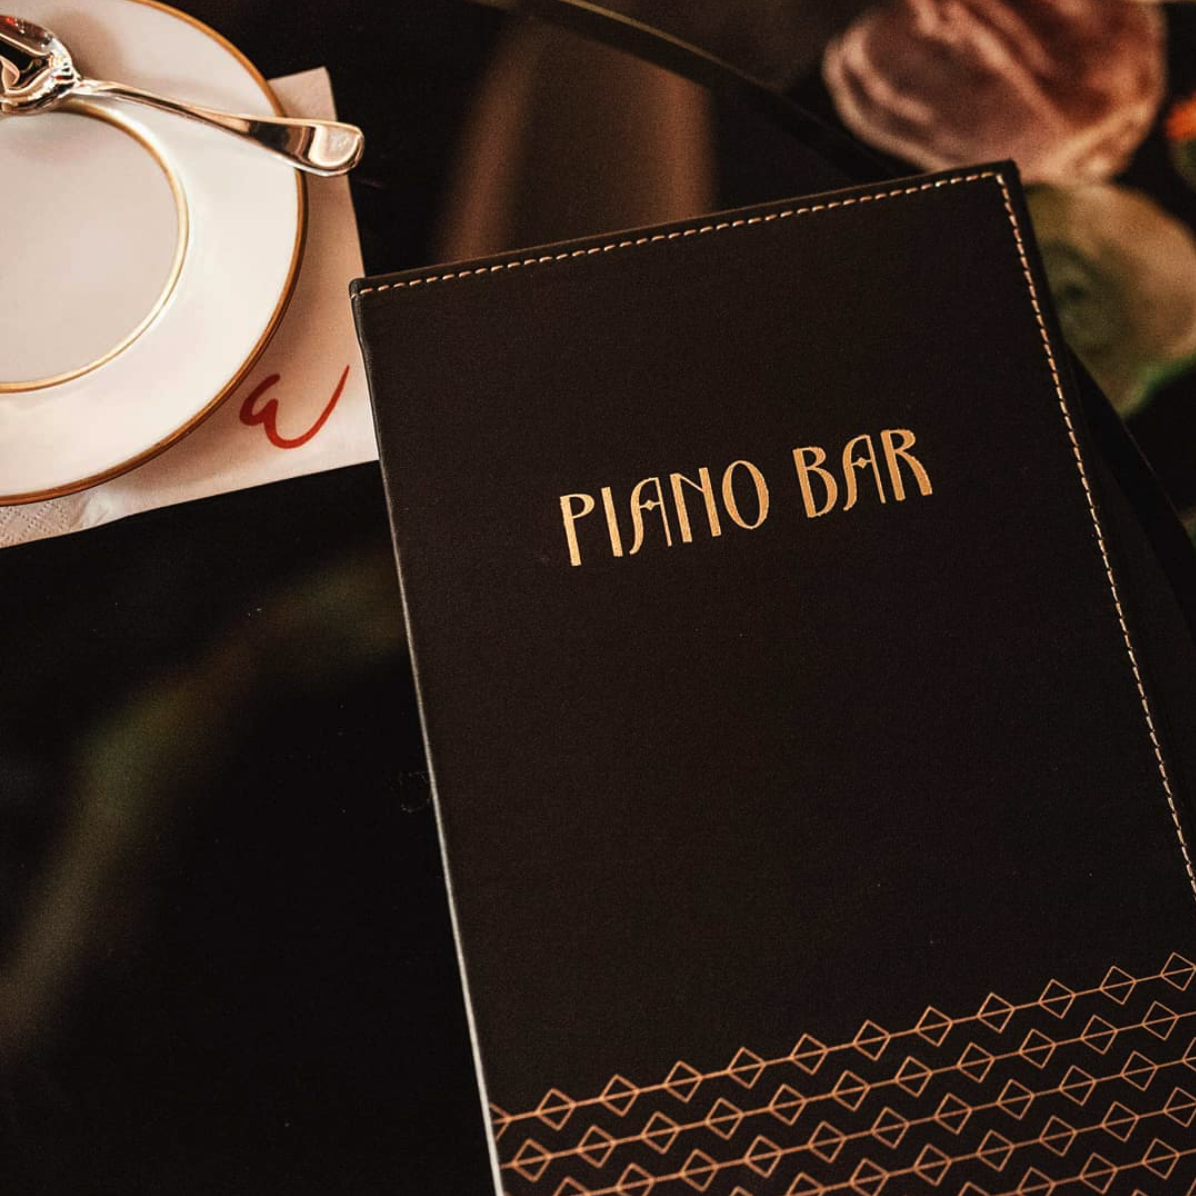 Piano Bar in gold lettering on a menu